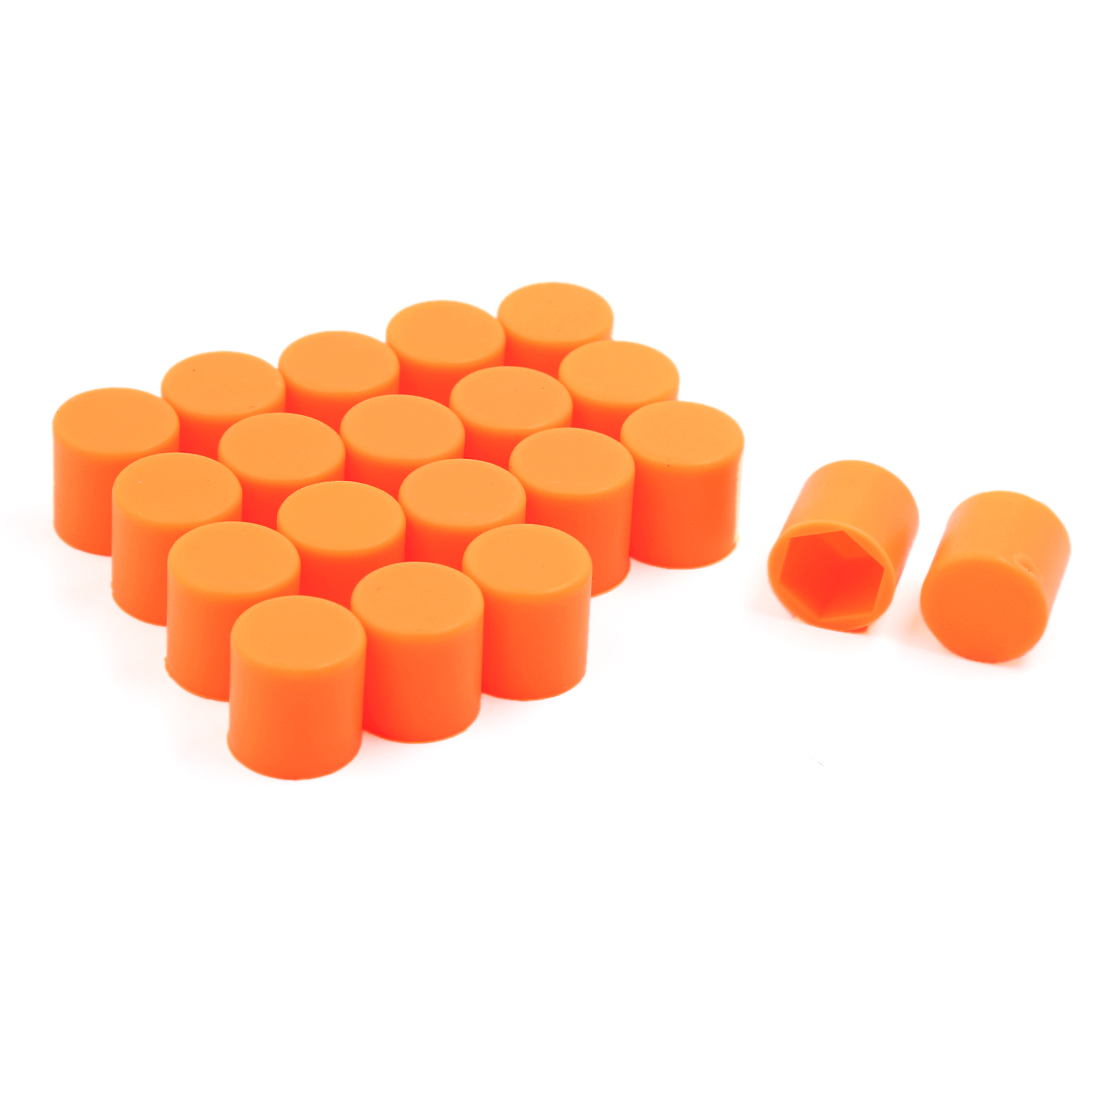 20PCS 17mm Silicone Car Wheel Lug Bolt Nut Cover Hexagonal Protective Cap Orange